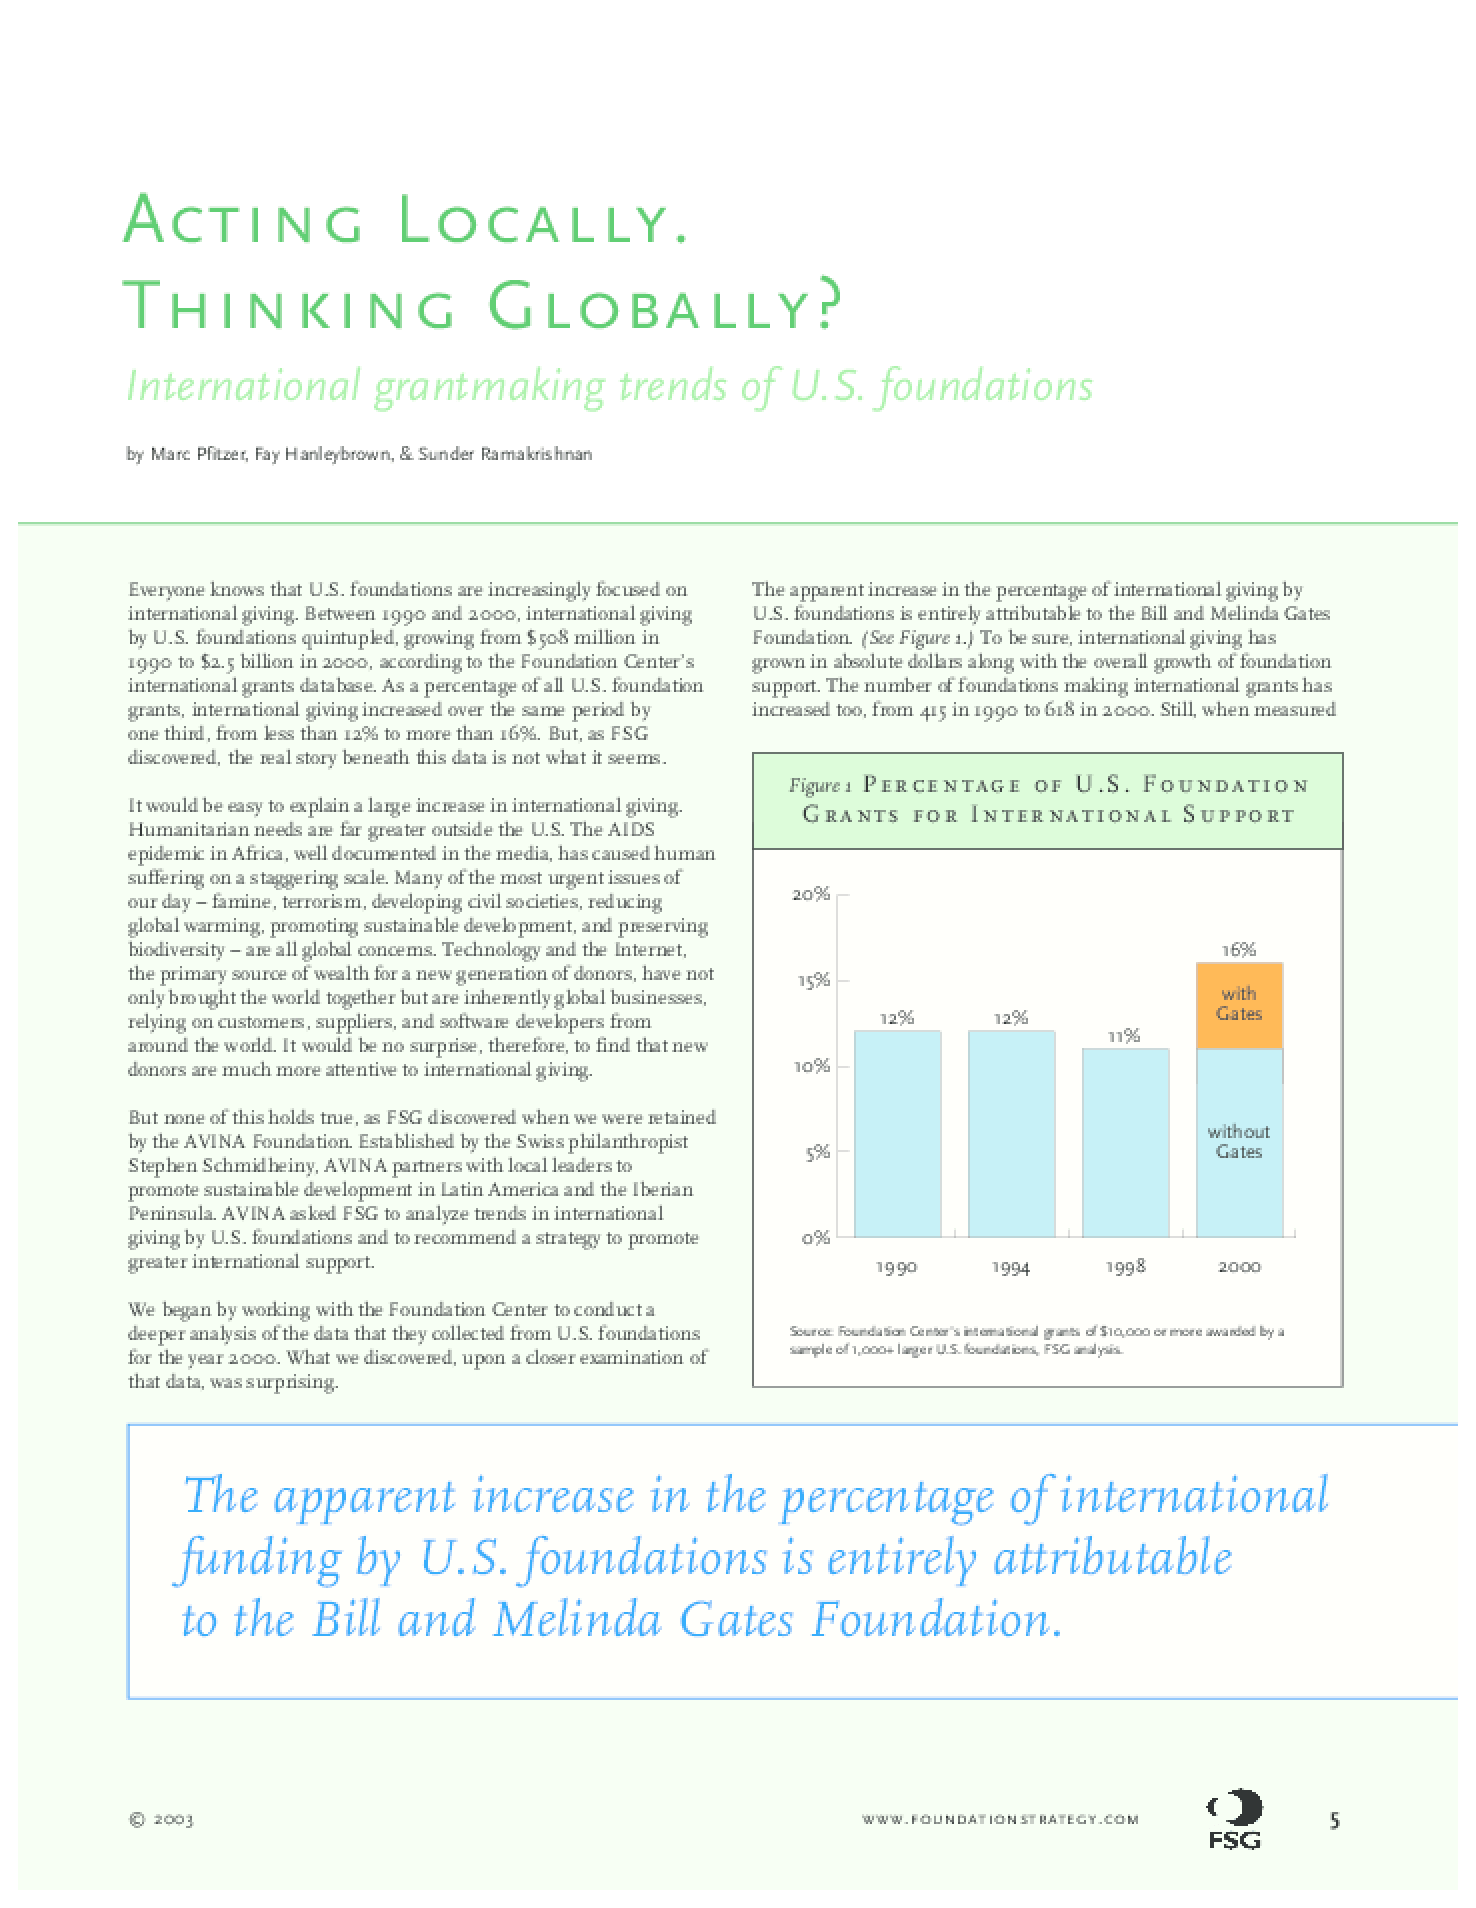 Acting Locally, Thinking Globally: International Grantmaking Trends for US foundations